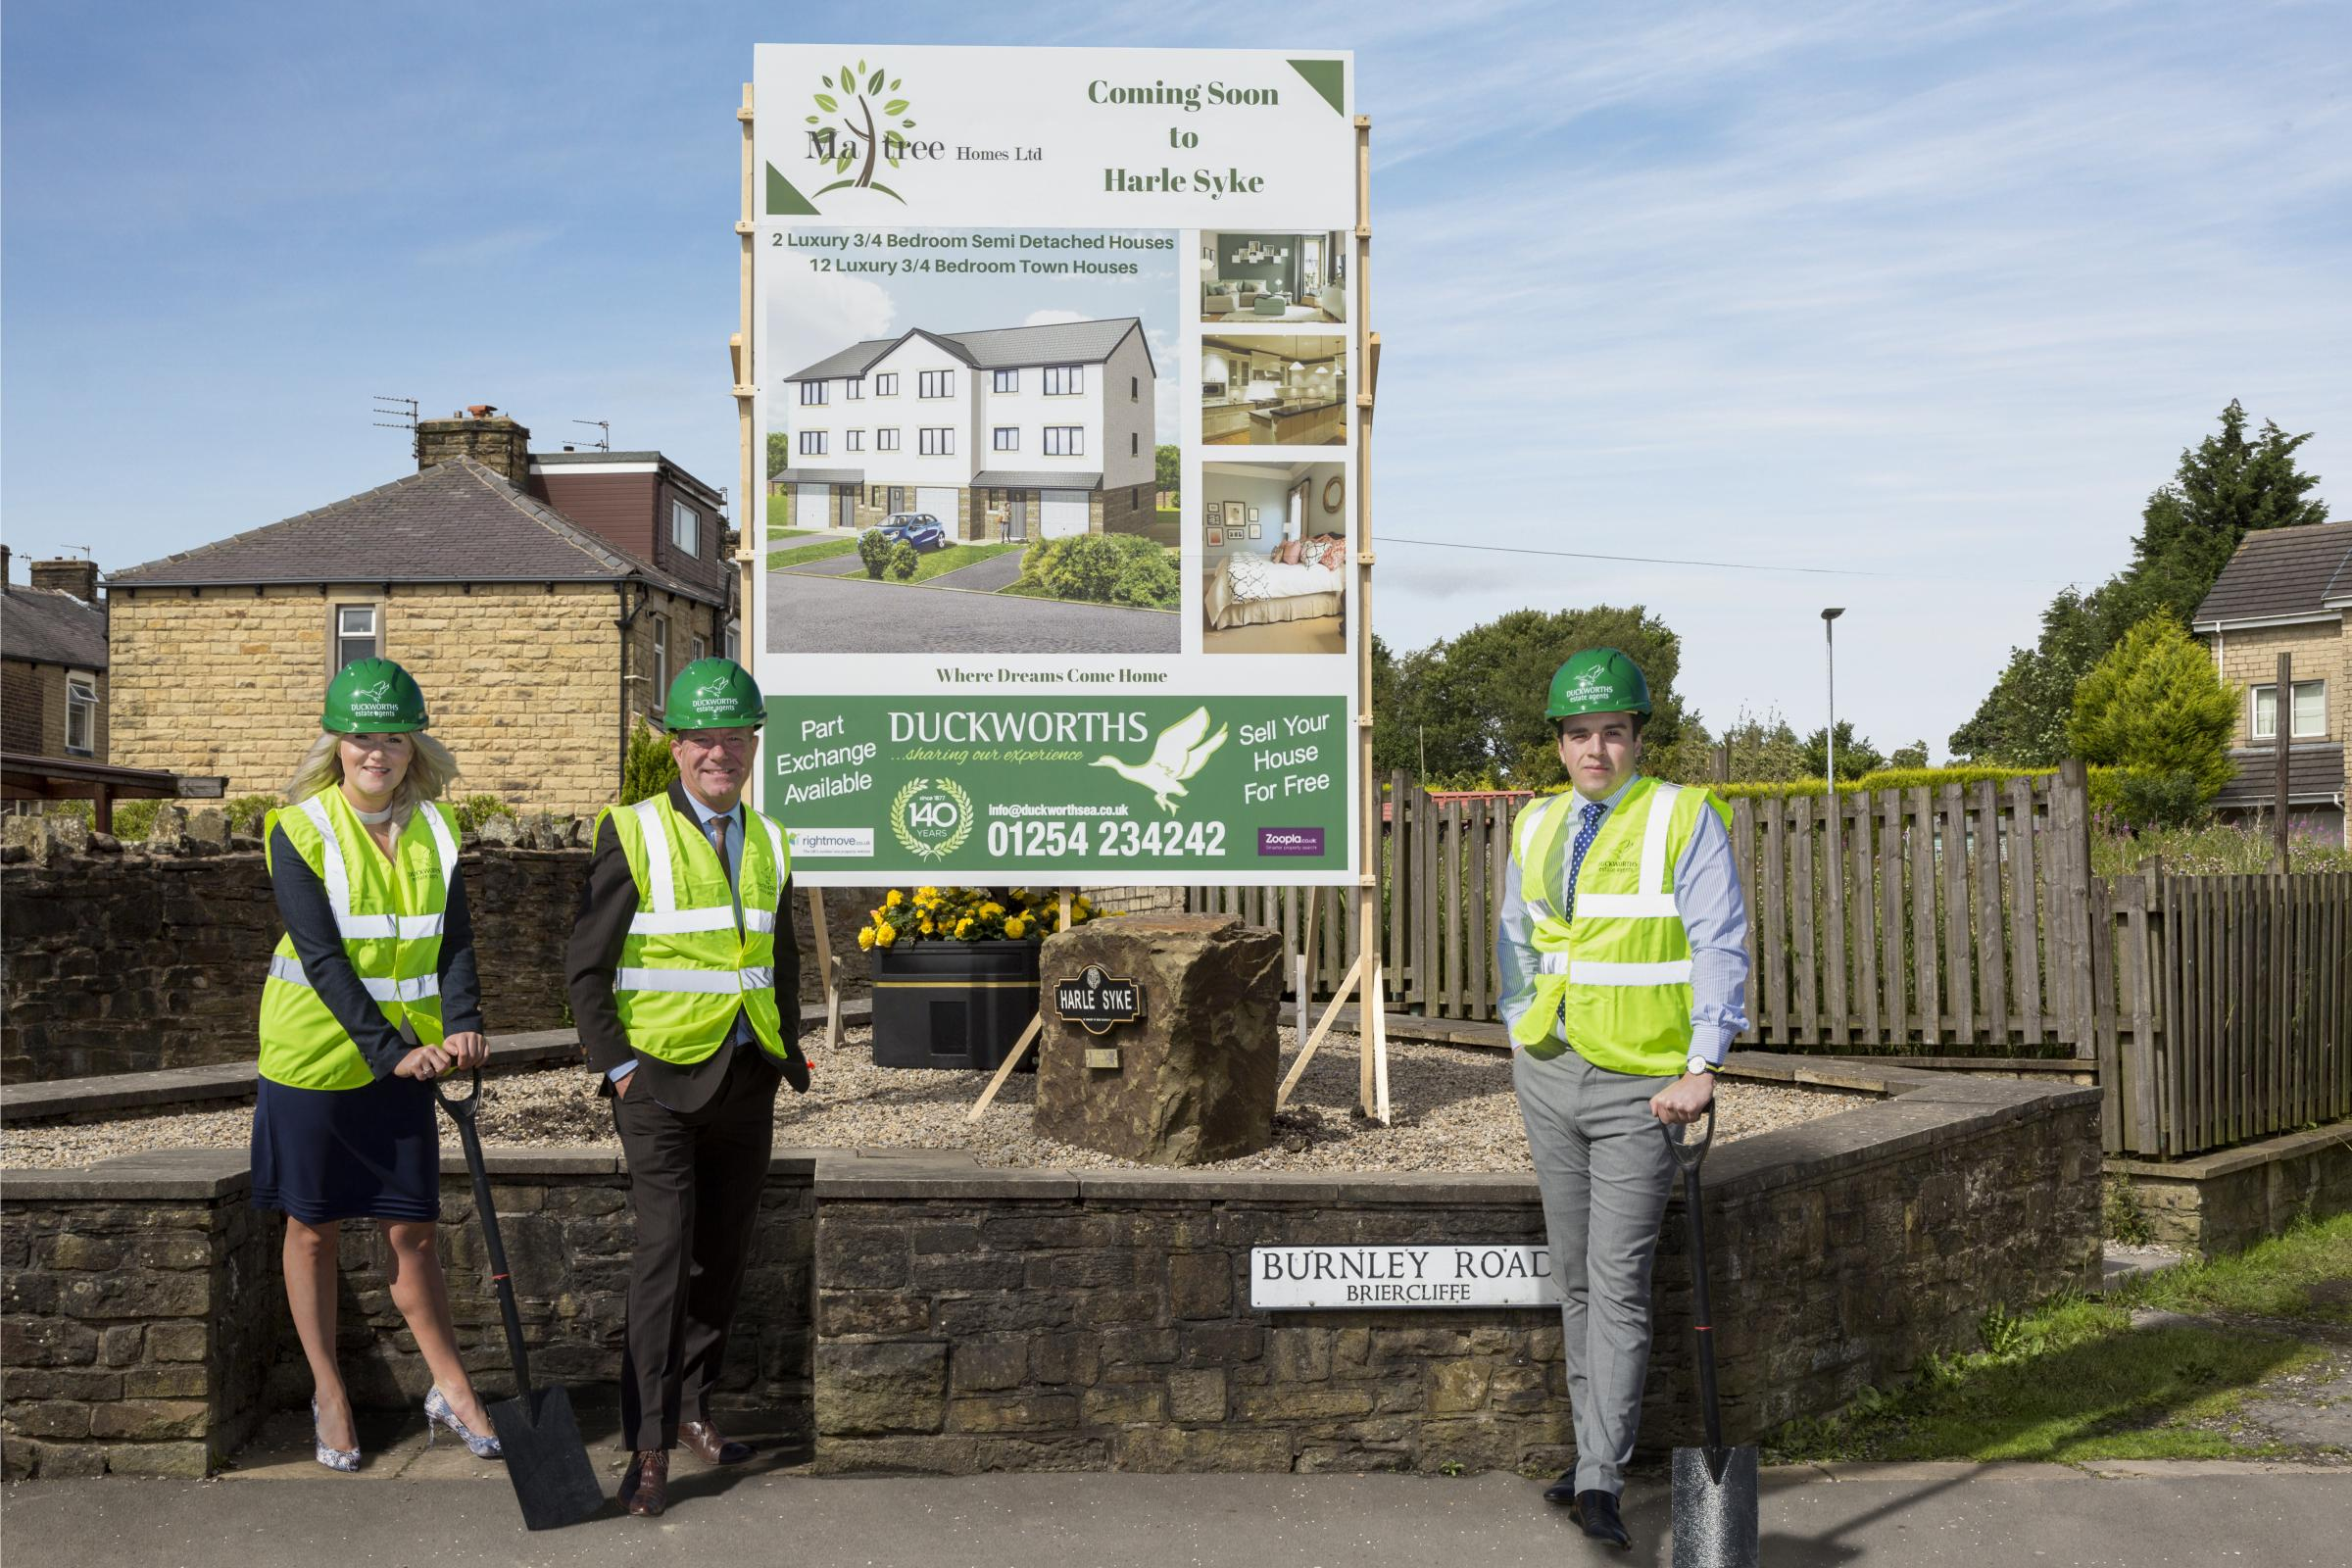 The development of 14 new homes is underway in Harle Syke, Burnley